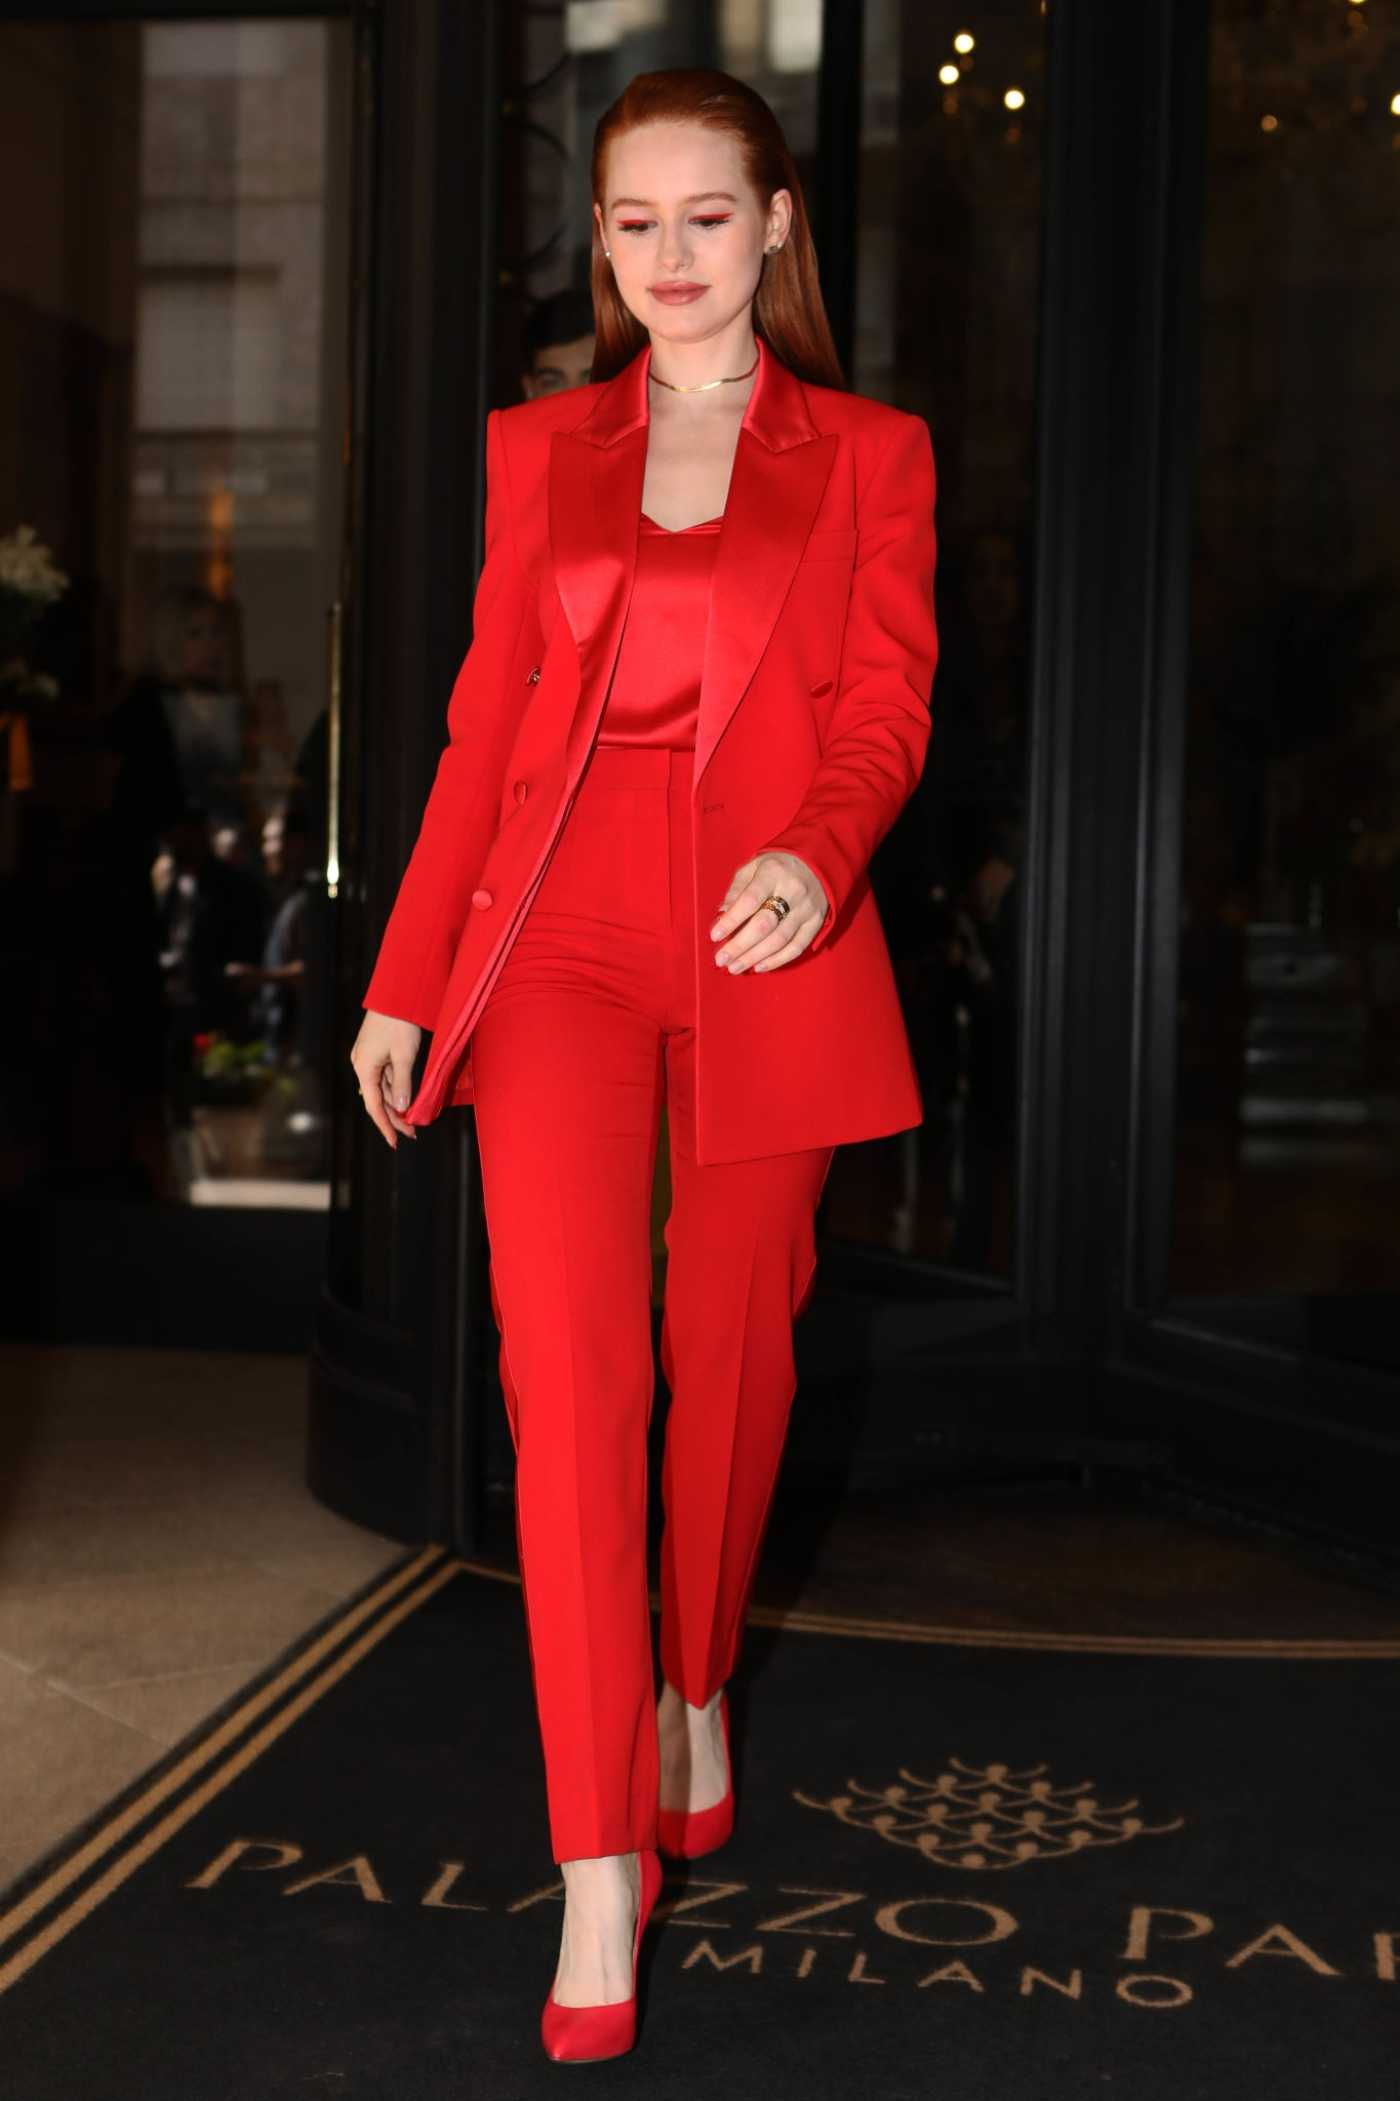 Madelaine Petsch in a Red Suit Arrives at 2020 Boss Fashion Show in Milan 02/23/2020